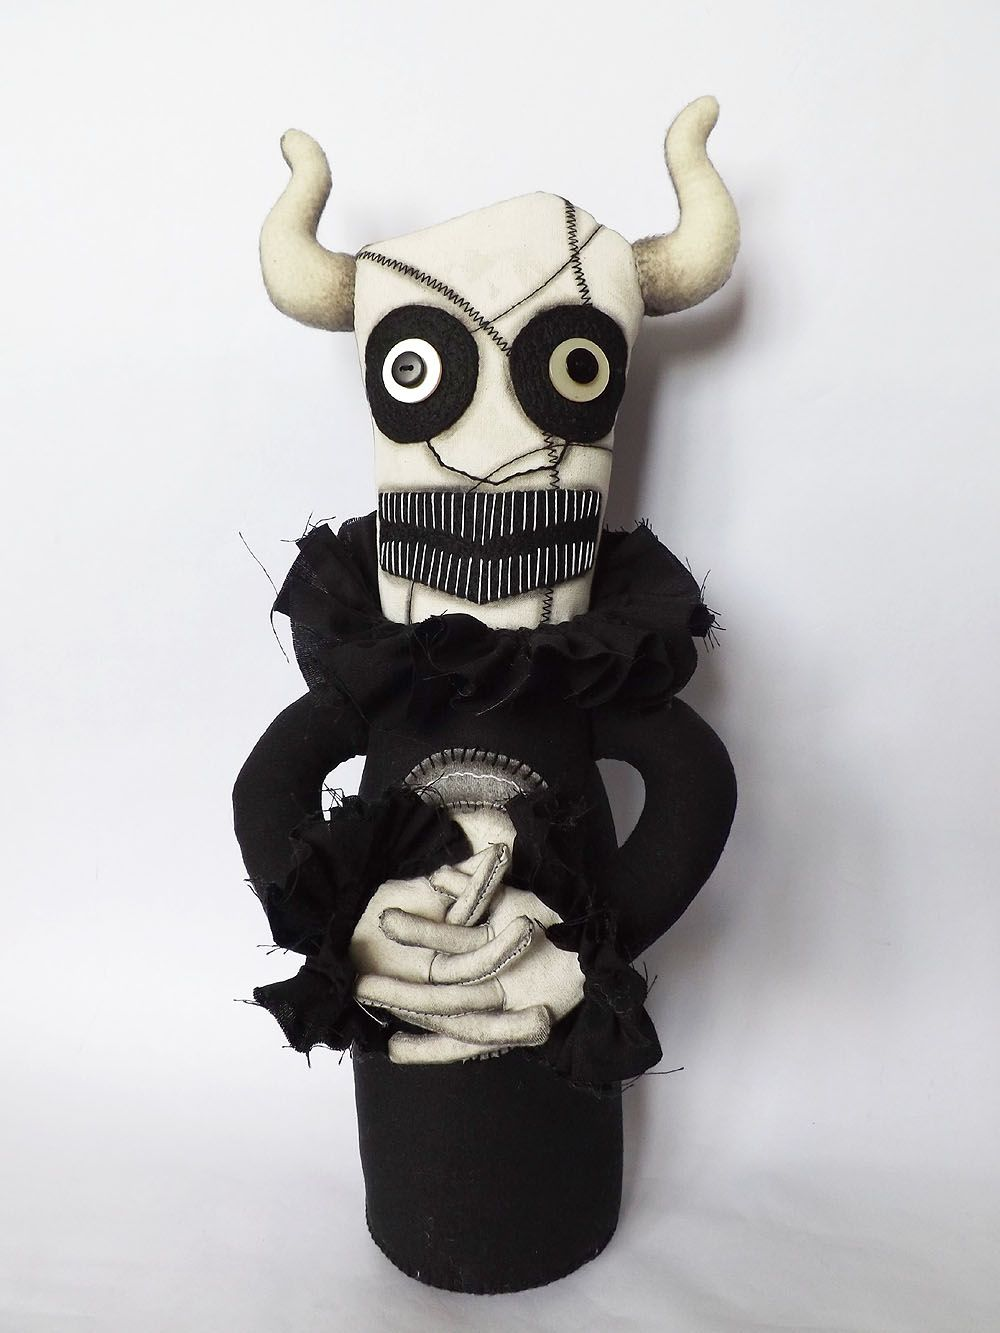 Pin by Thomas Davis on Monsters Art dolls, Pet toys, Horror